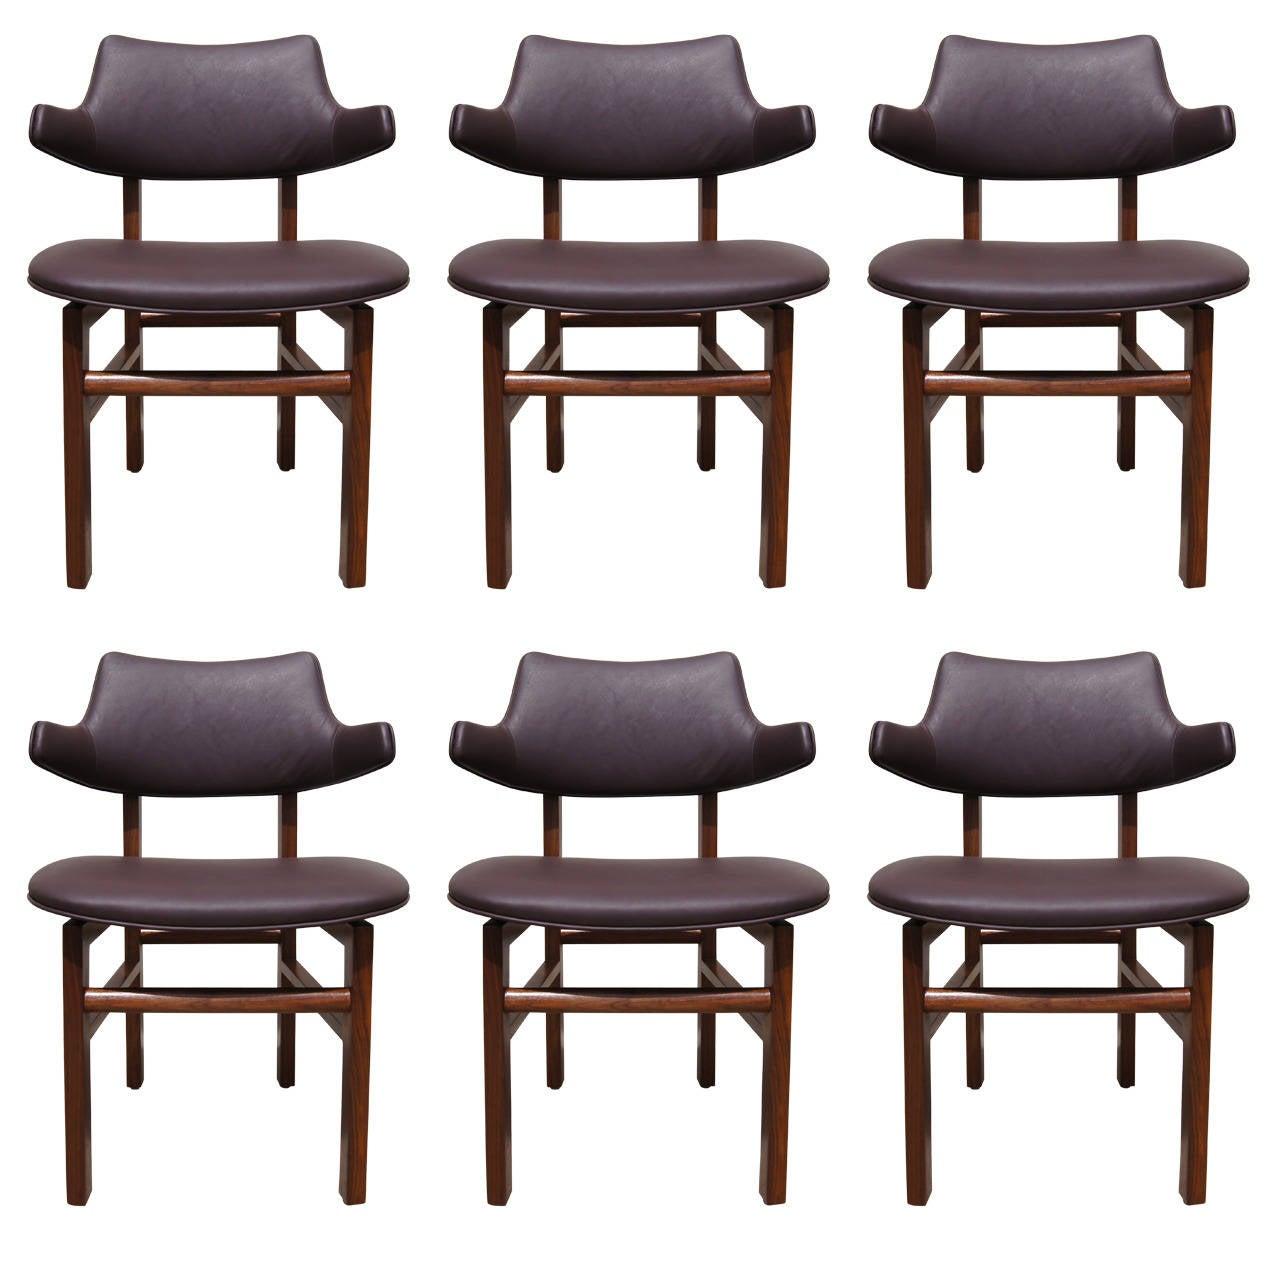 Set of Six Leather and Walnut Dining Chairs by Edward Wormley for Dunbar